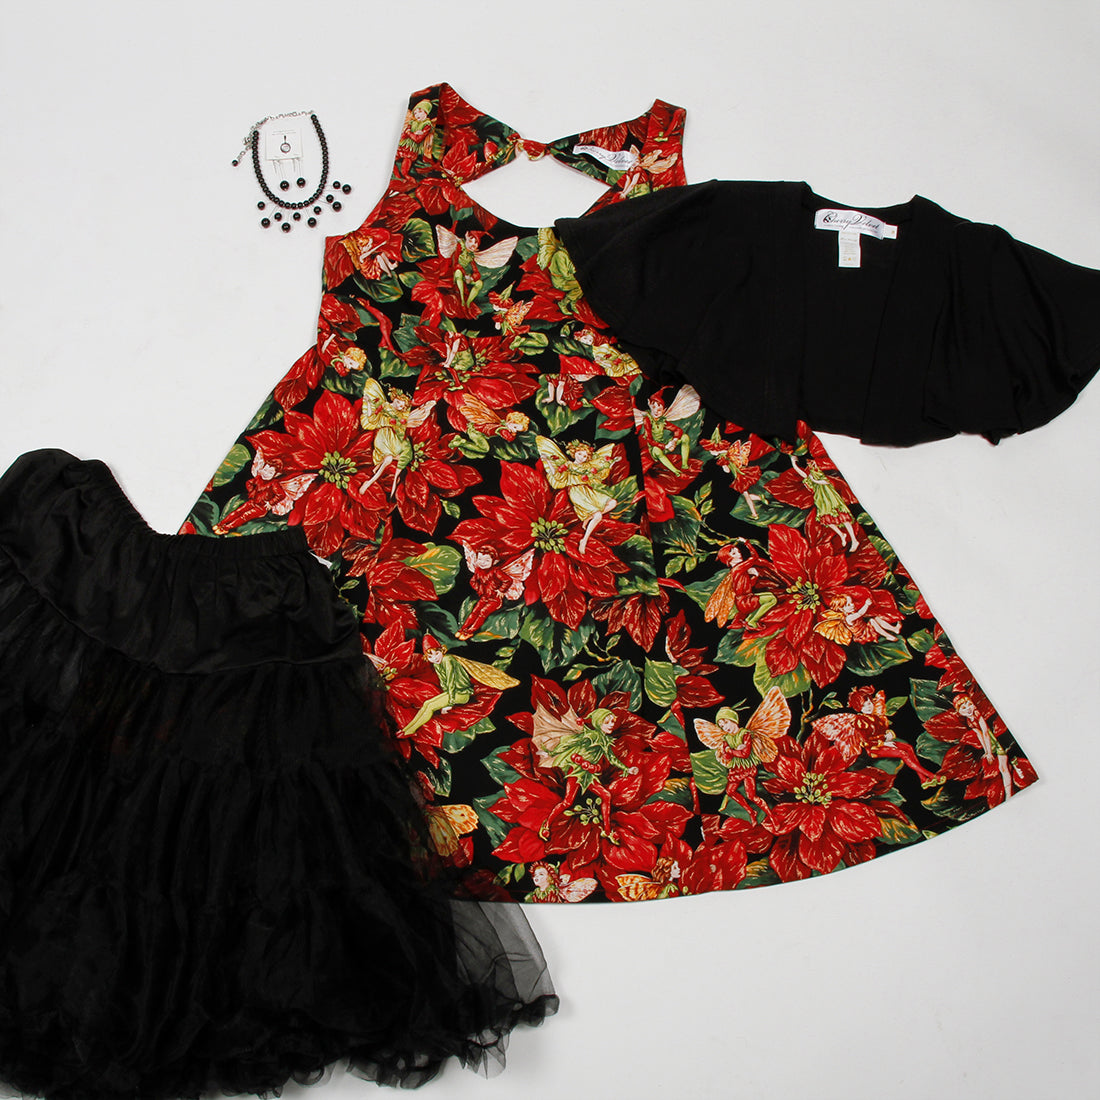 Brigitte Festive Fairies dress, black chiffon crinoline, Claire capelet